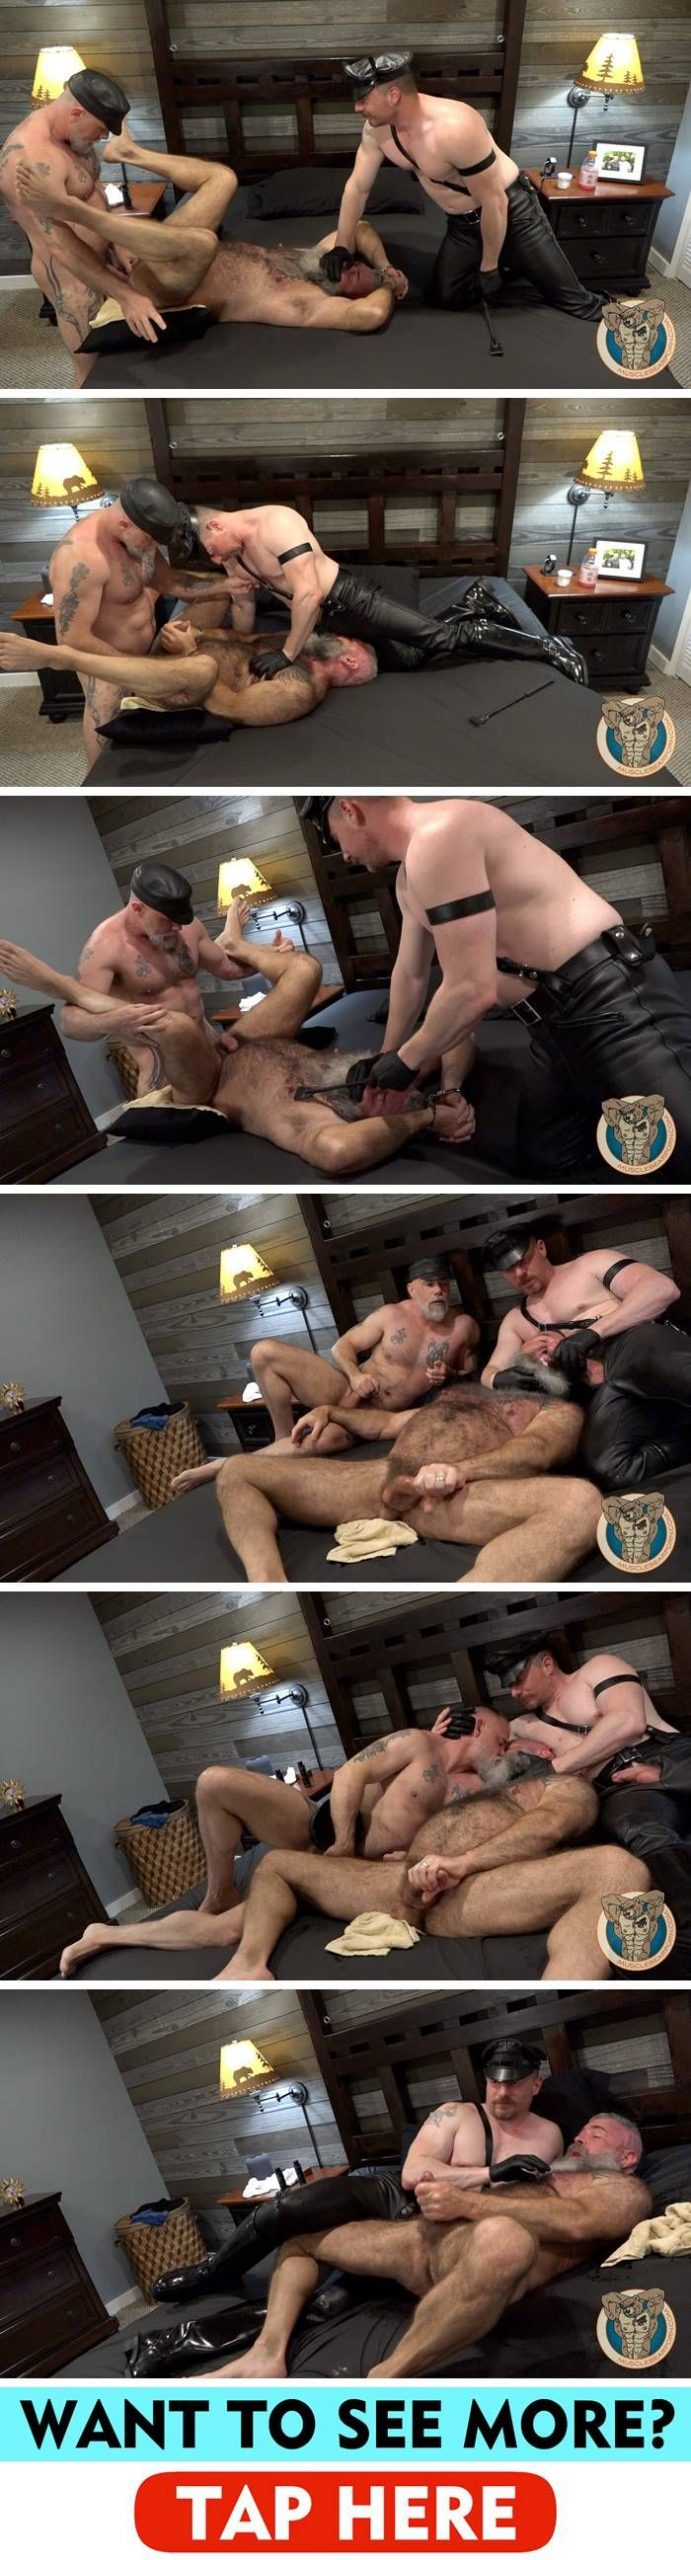 MuscleBearPorn: Jack Reed, Will Angell & Liam Angell